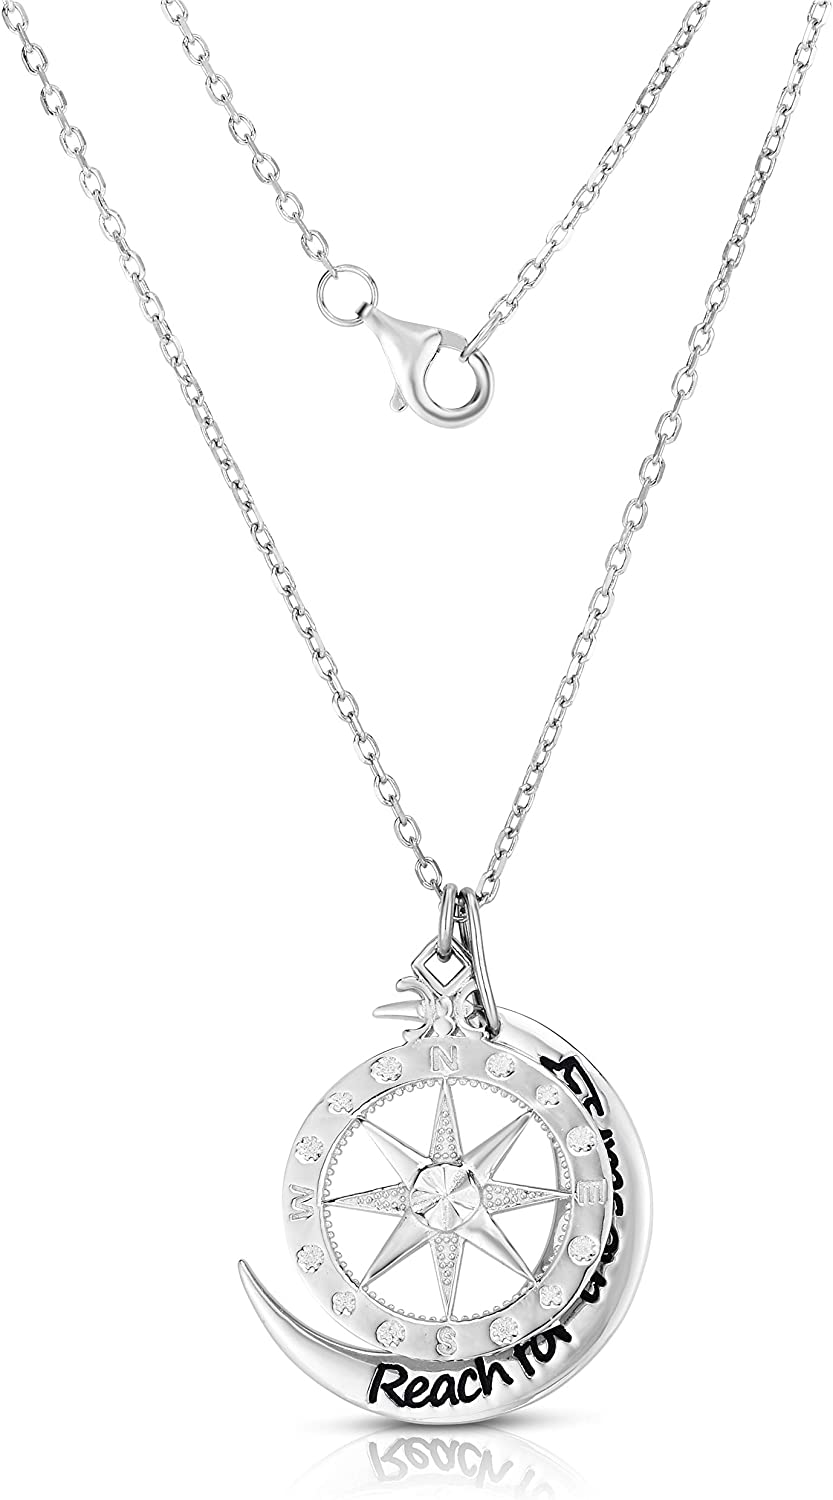 Unique Royal Jewelry 925 Sterling Silver Reach for The Stars Car